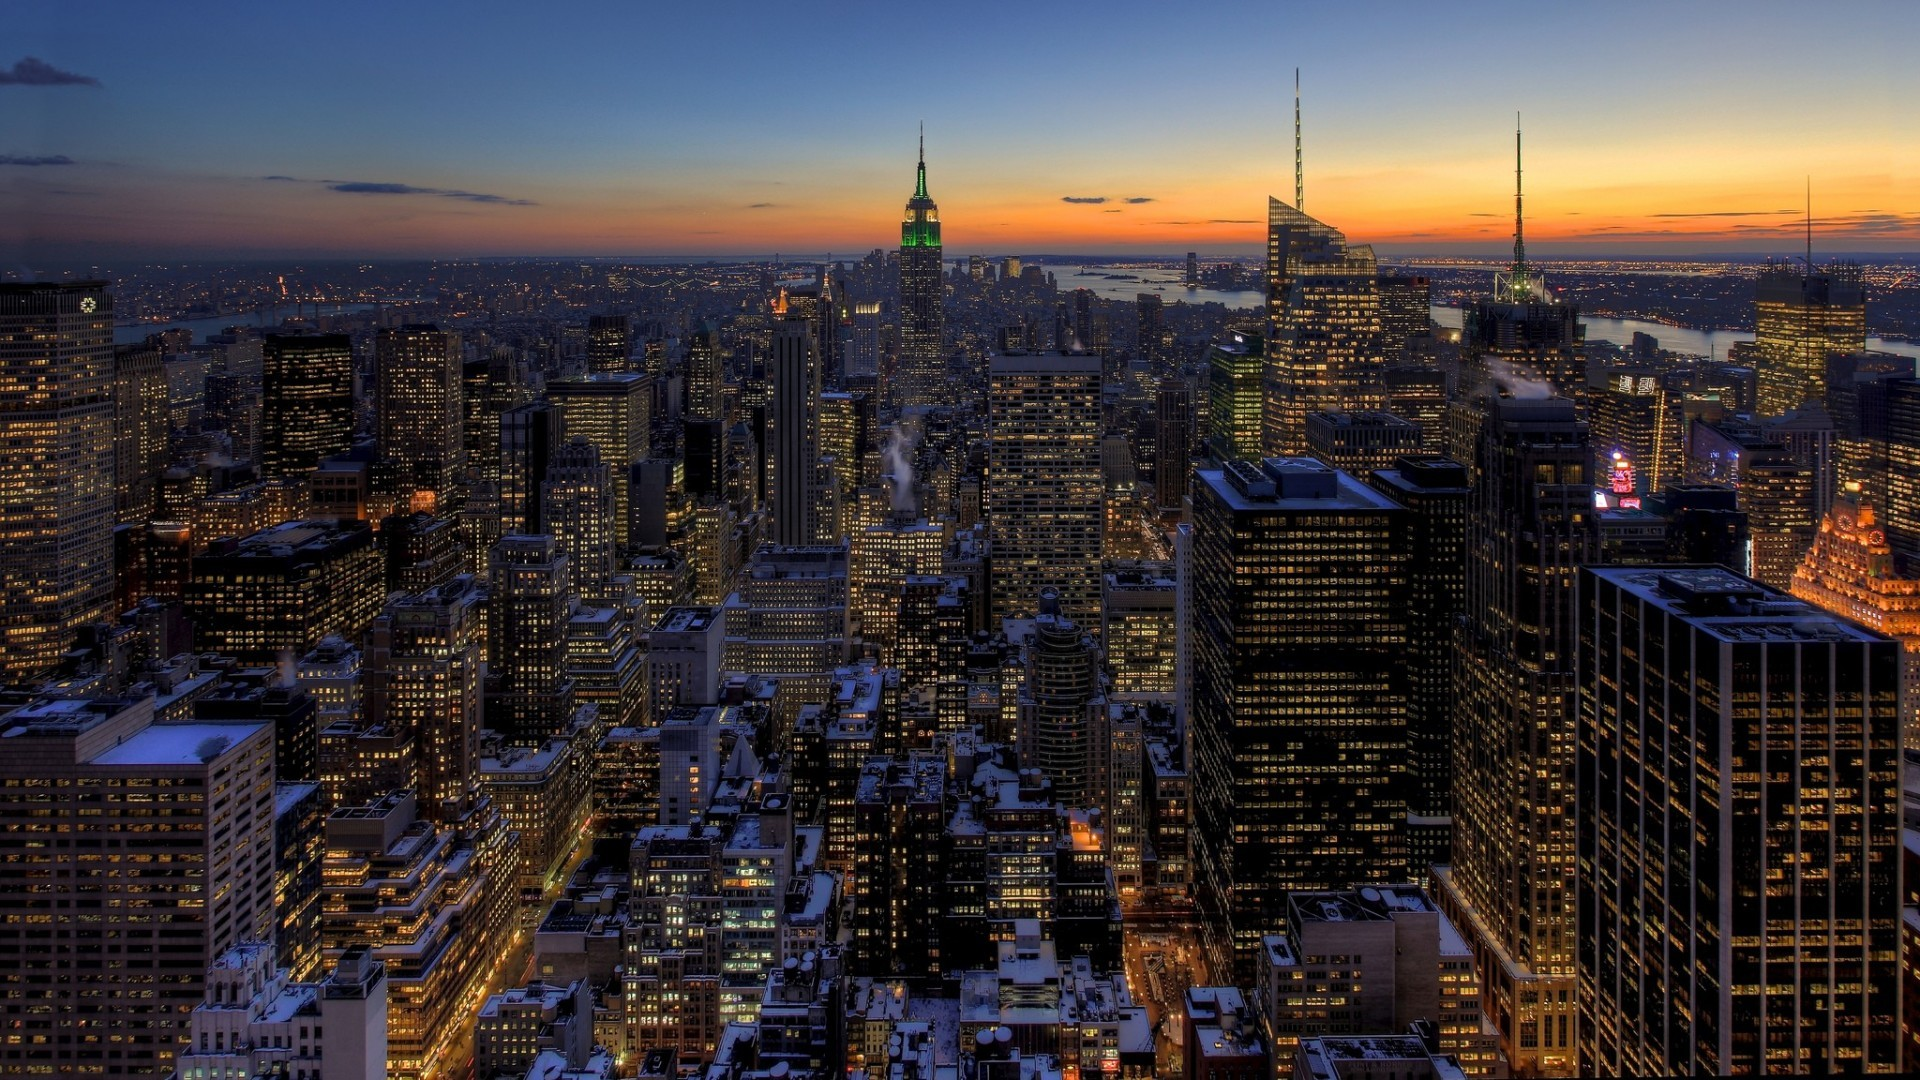 New York City Skyline Wallpapers ①